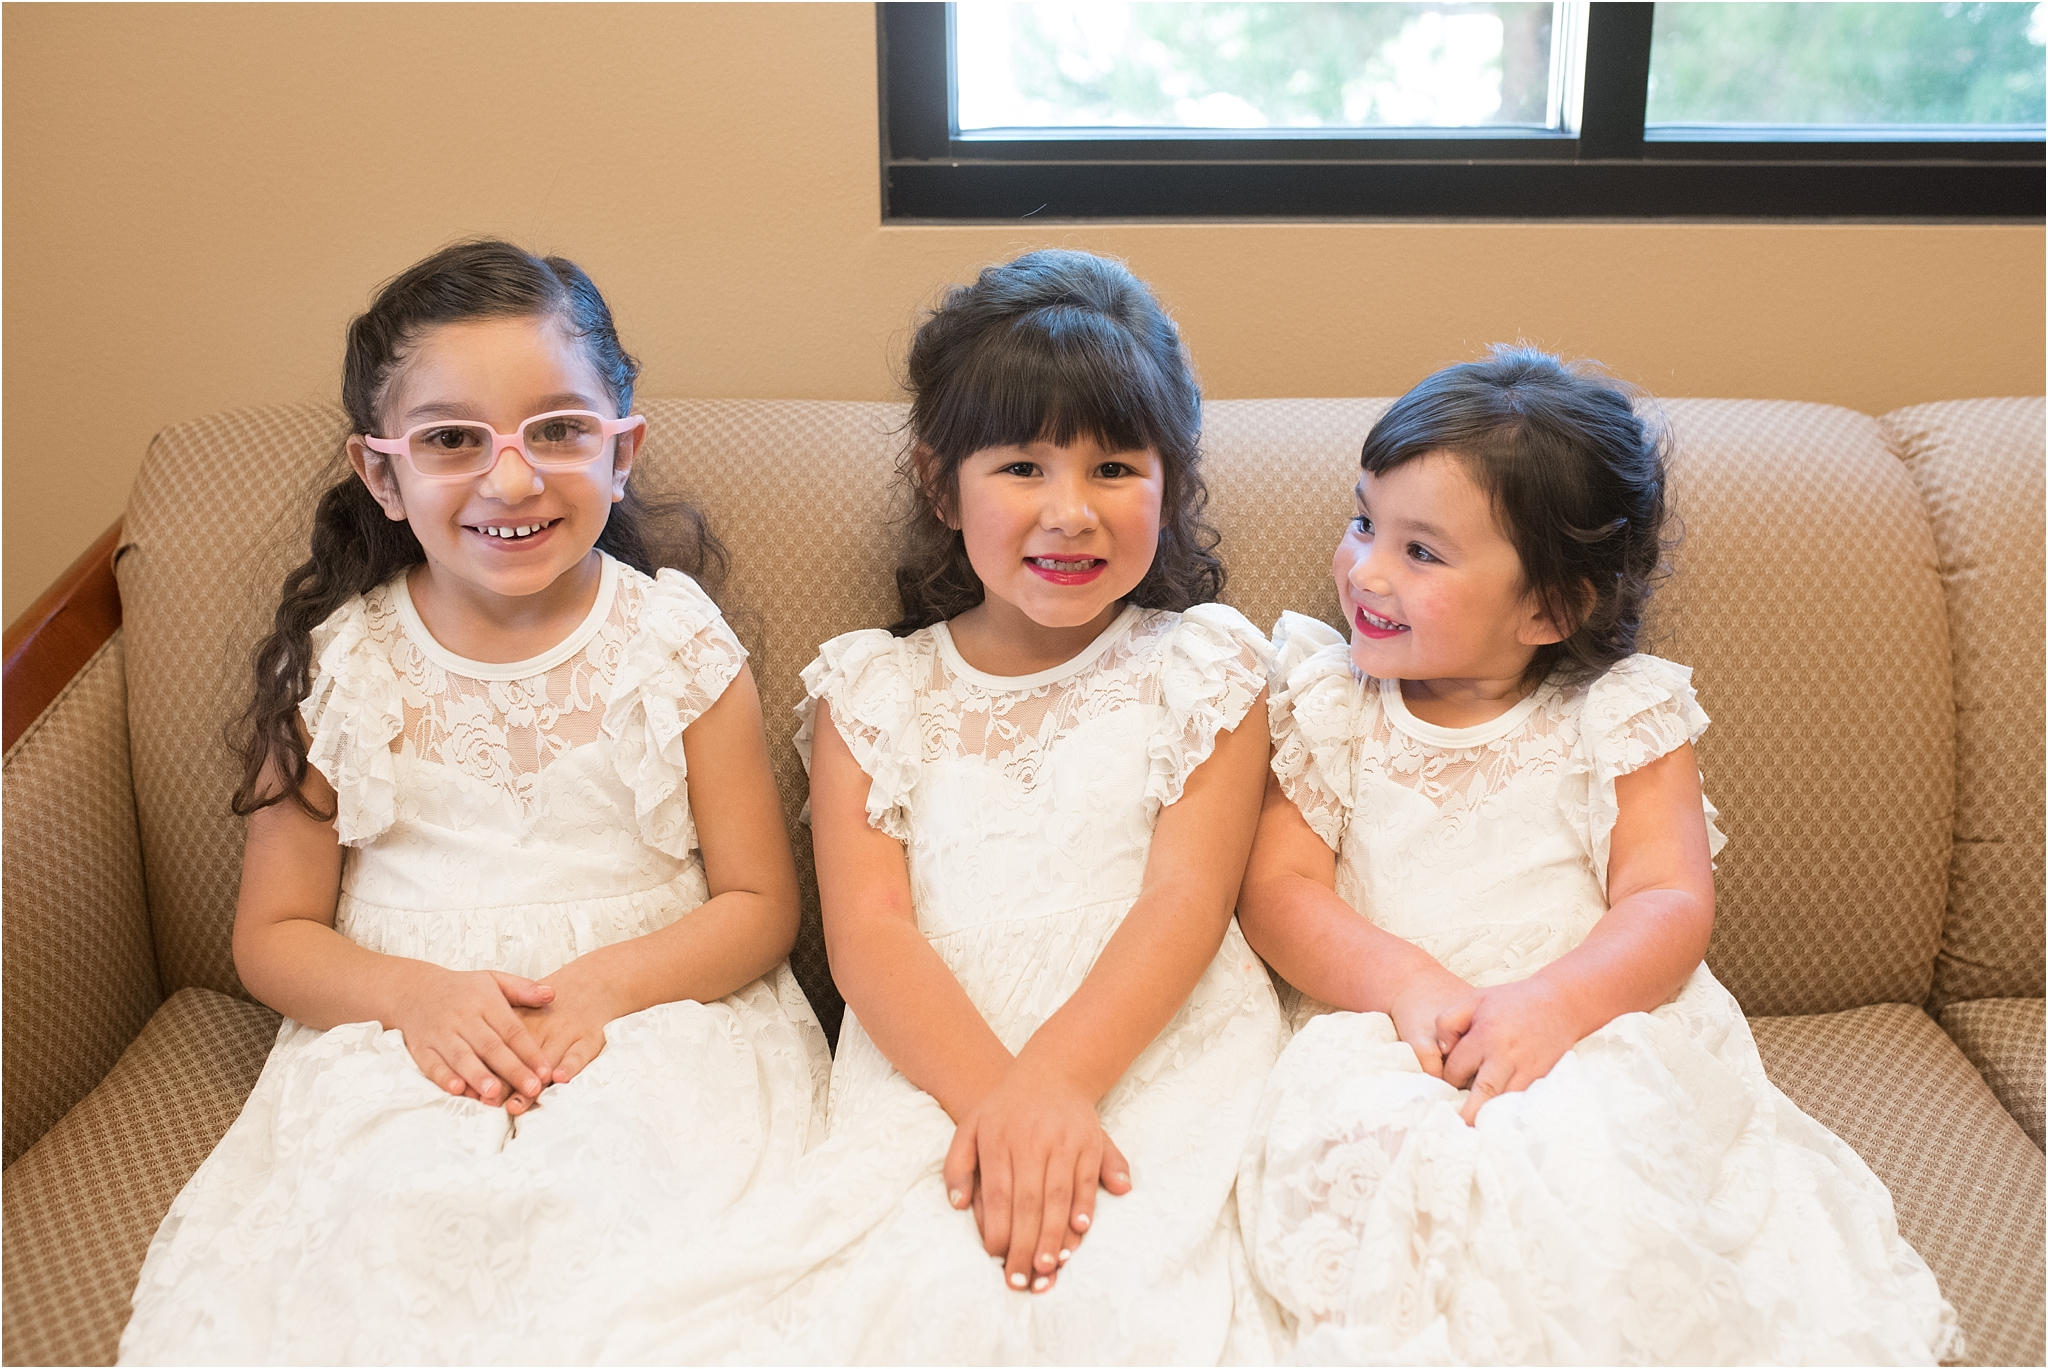 kayla kitts photography - albuquerque wedding photographer - hairpins and scissors - a cake odyssey - new mexico wedding photographer_0012.jpg